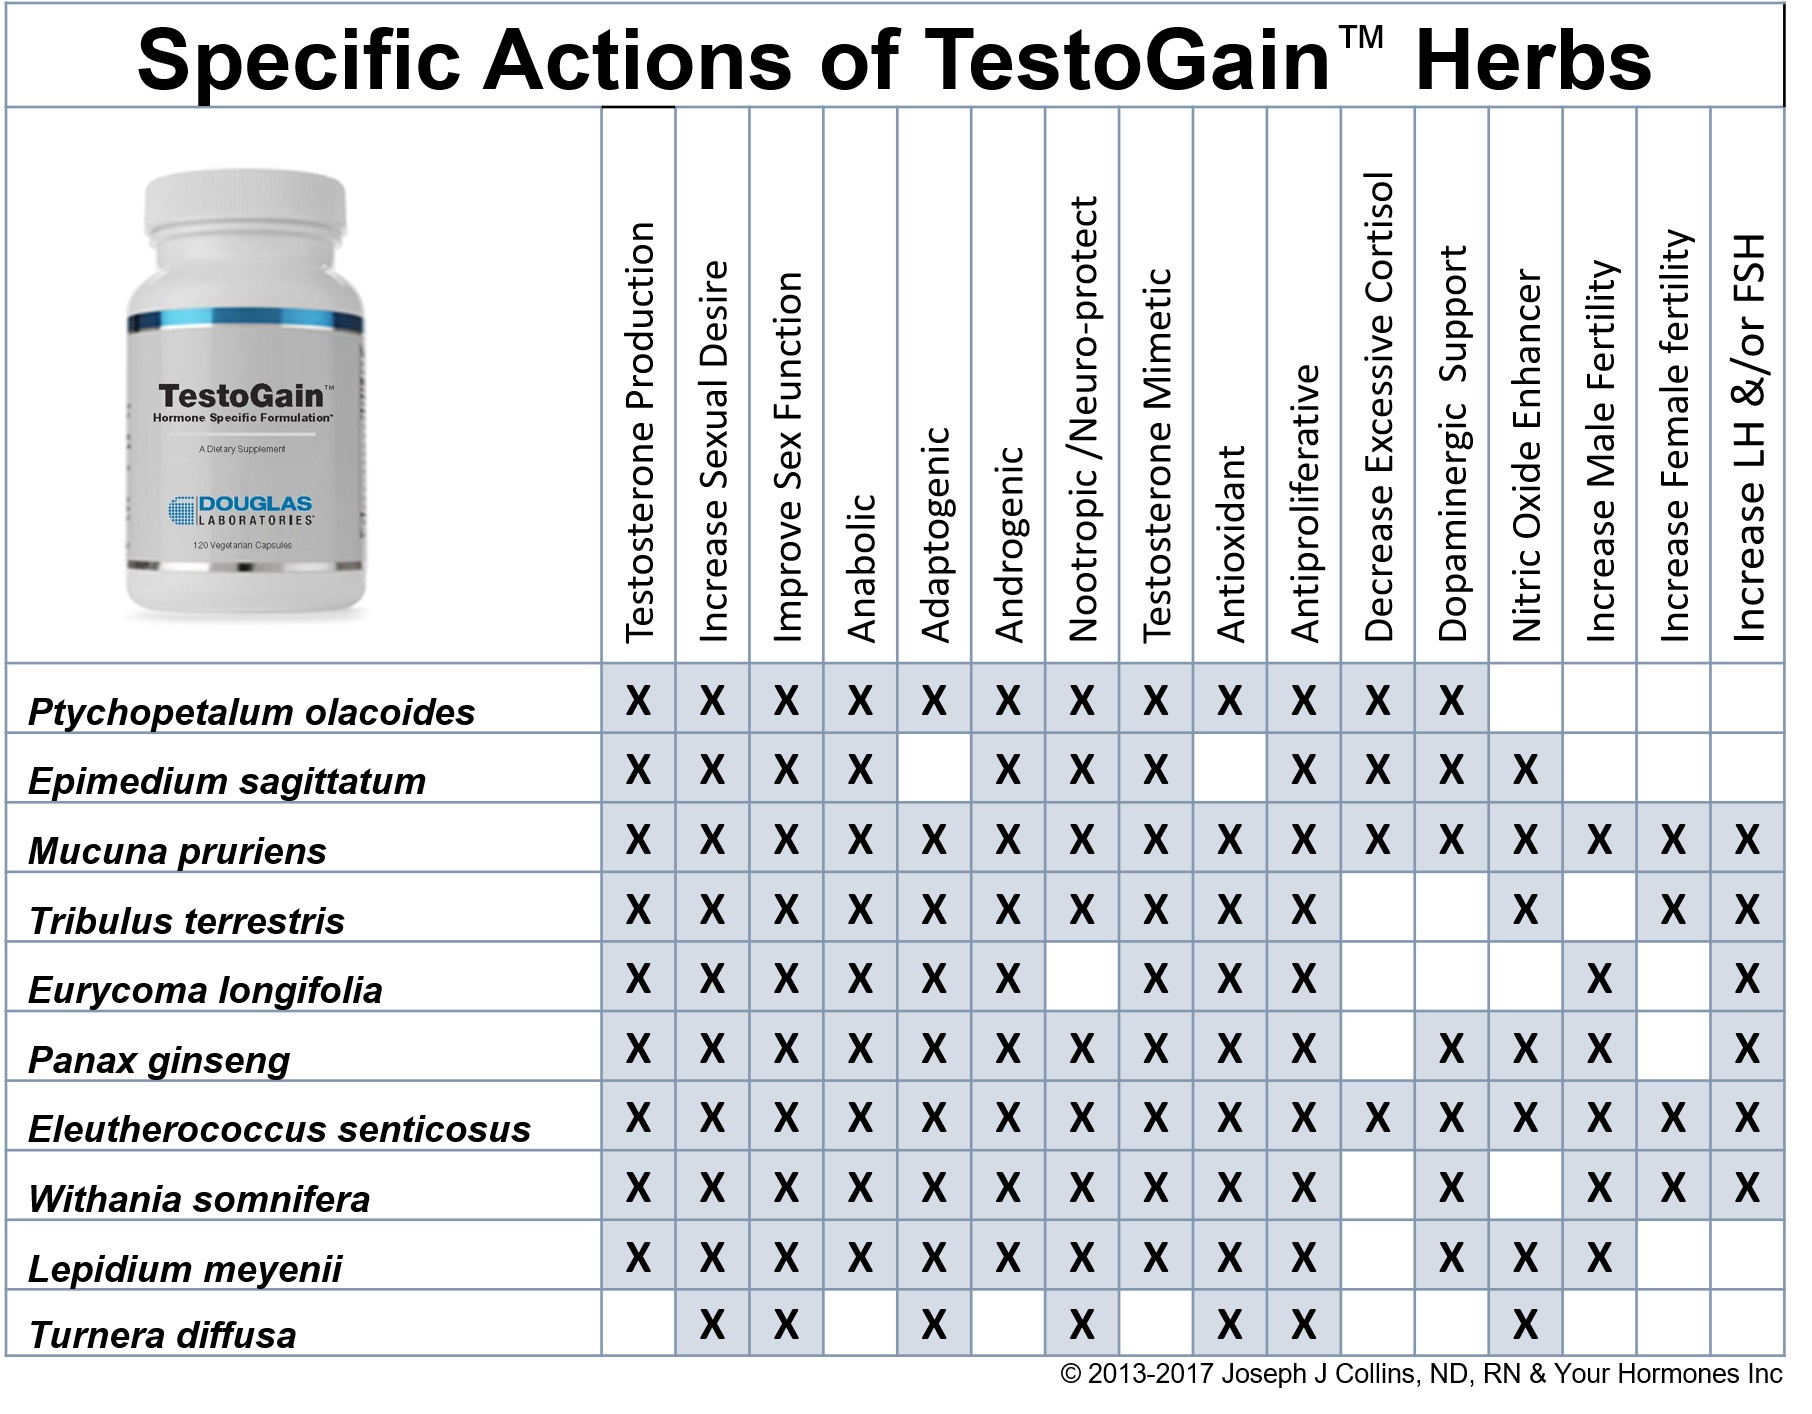 Specific Actions of Herbs in TestoGain™